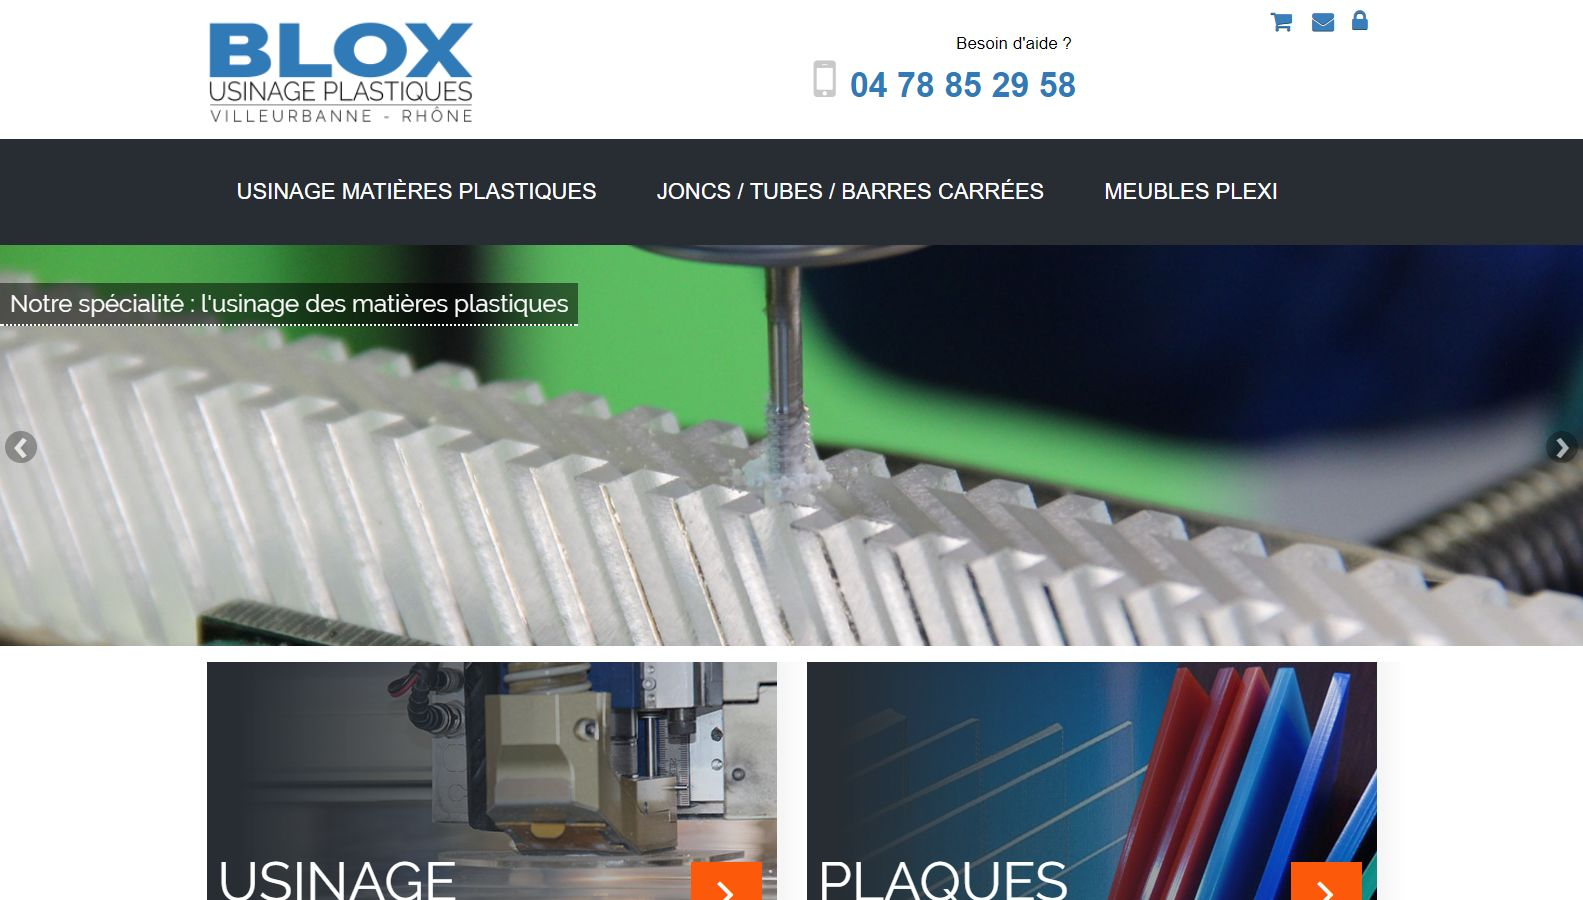 Réalisation RP2I (Romaric Pibolleau): BLOX - Site sous Prestashop + site institutionnel